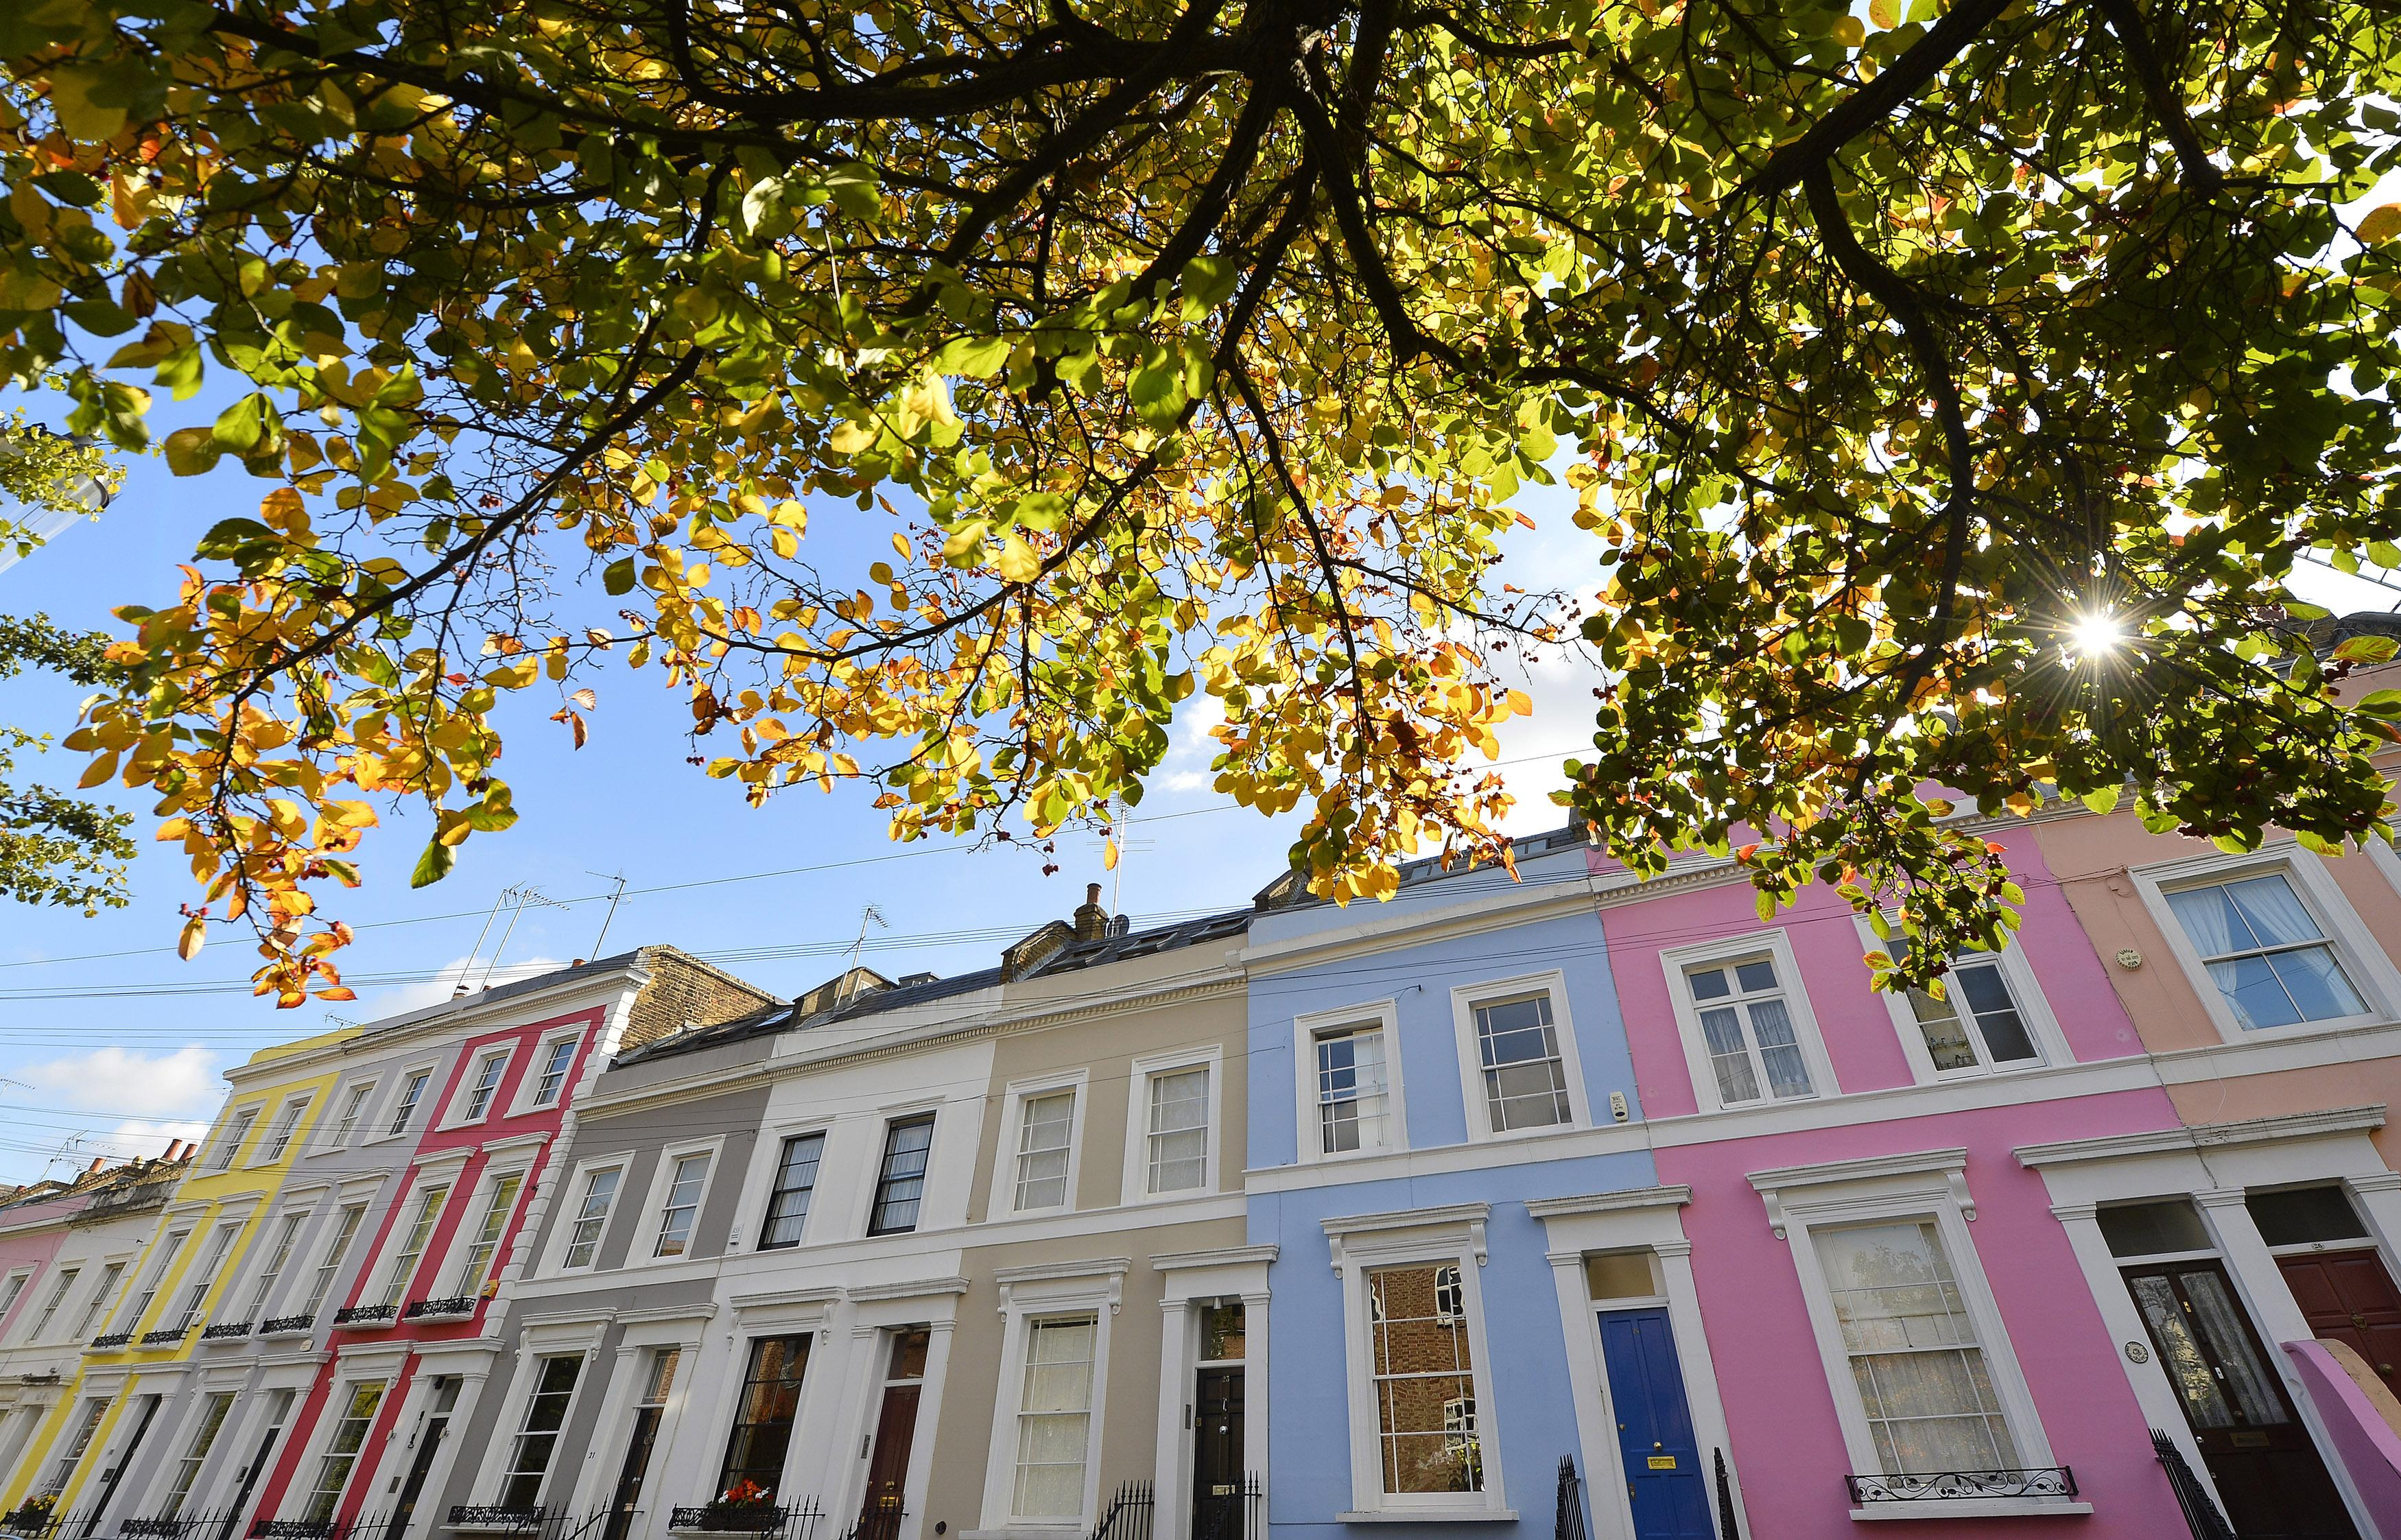 London house prices to fall this year and next, 1-in-3